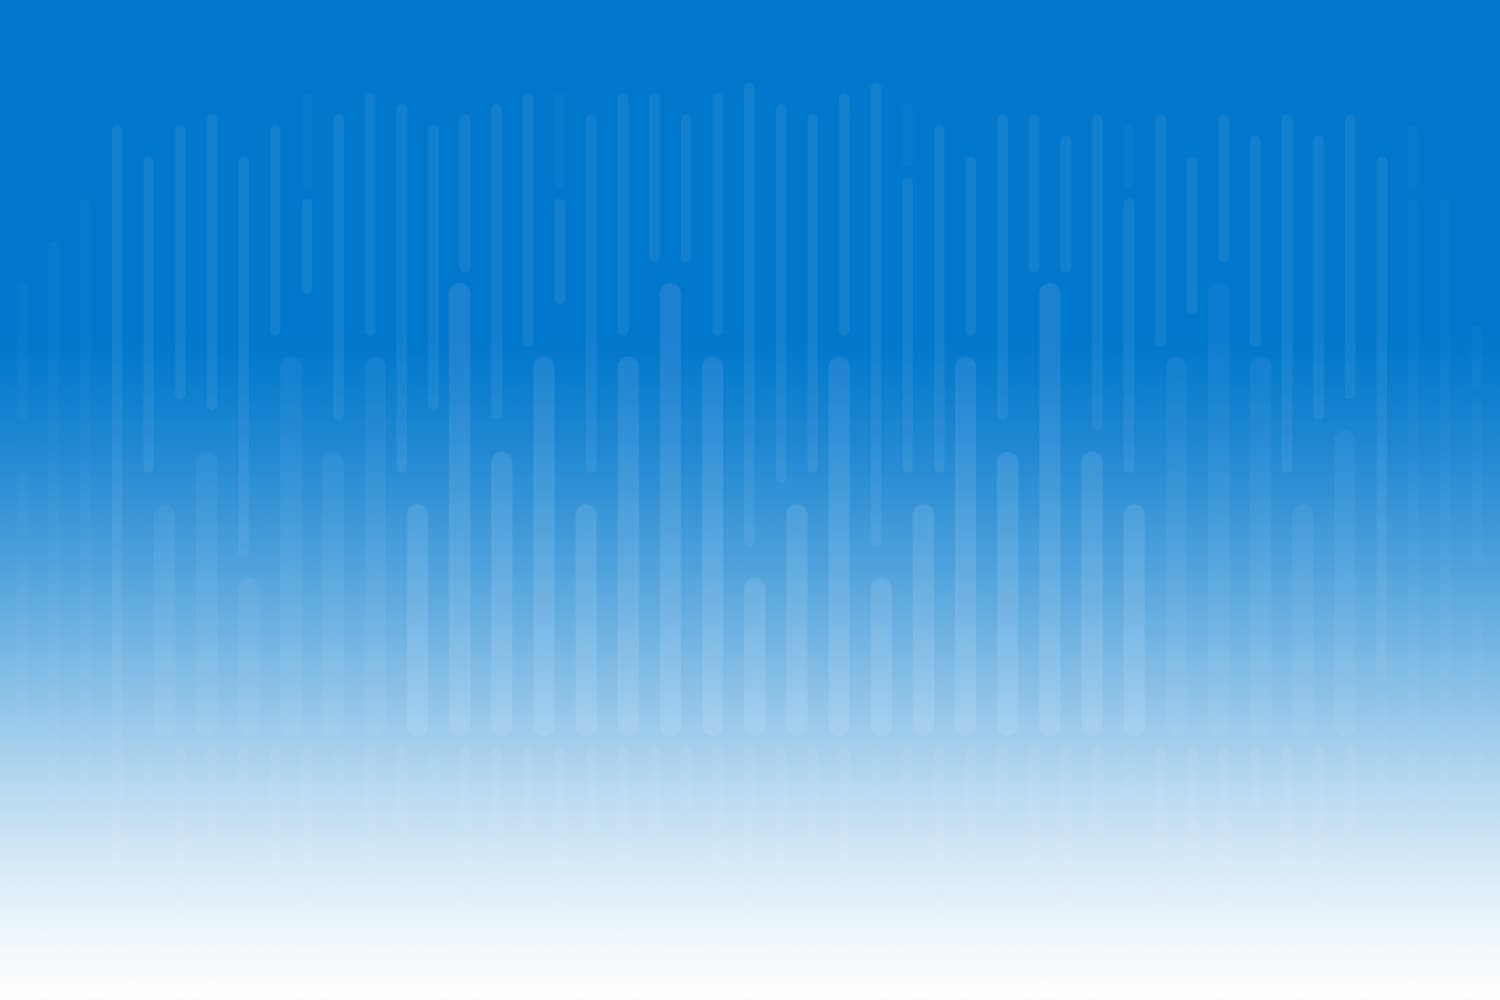 Abstract Data Visualization art - gradient white to cobalt blue